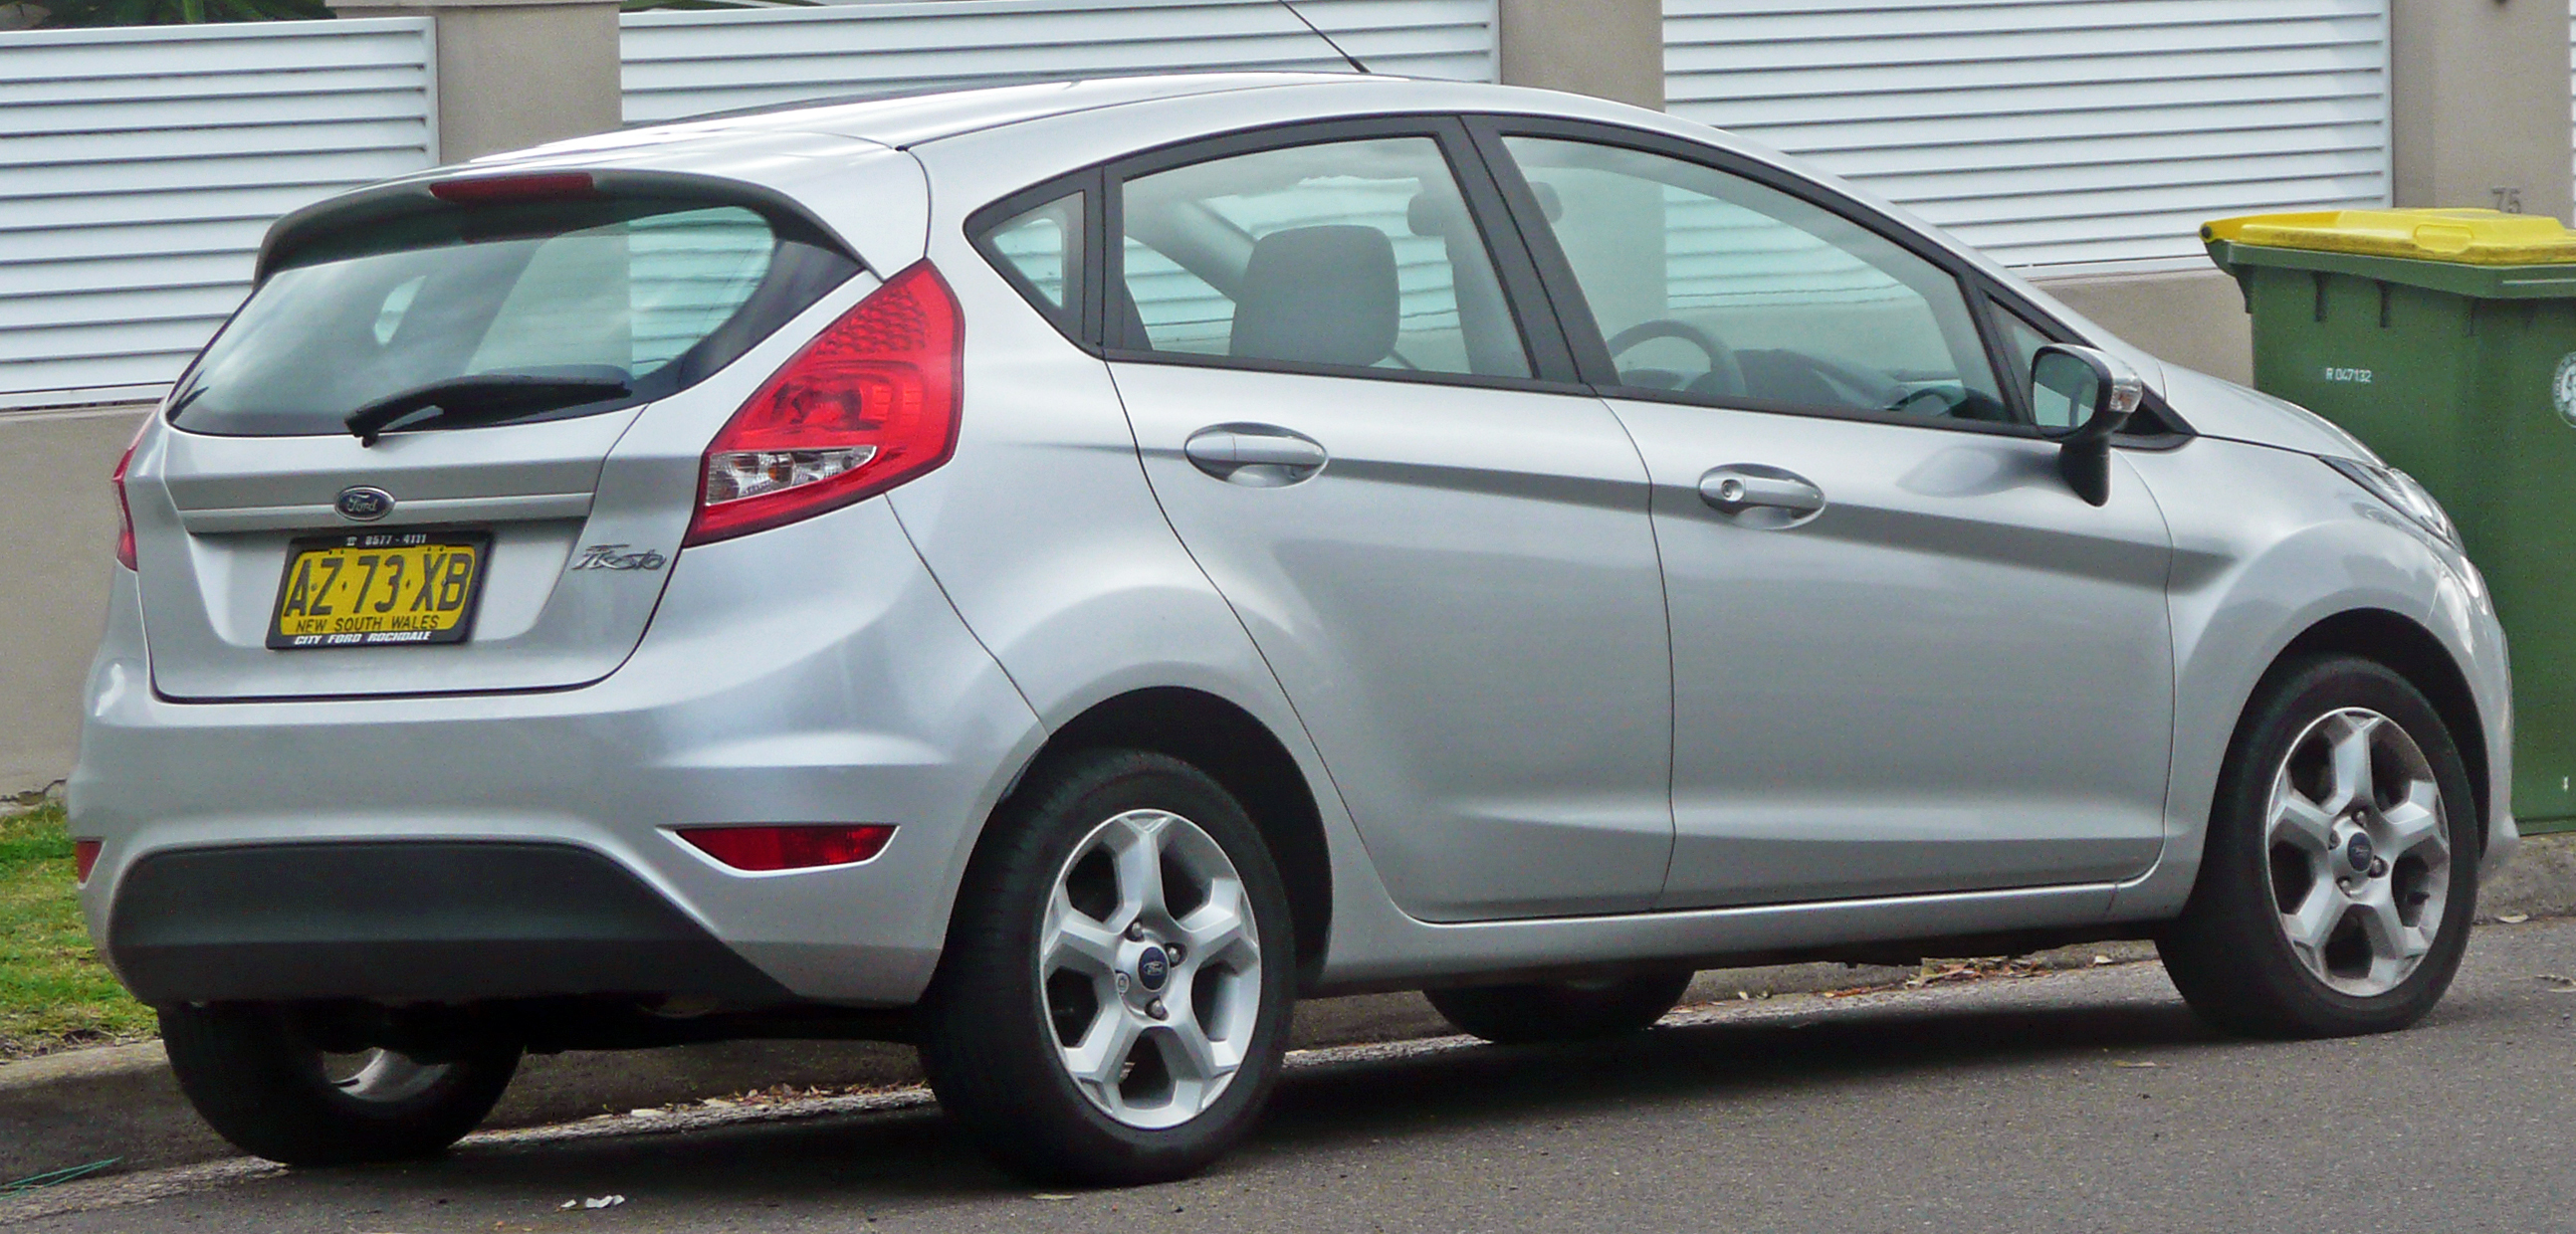 Difference Between Zetec And Titanium What Is The Difference Between Ford Fiesta Zetec And Titanium